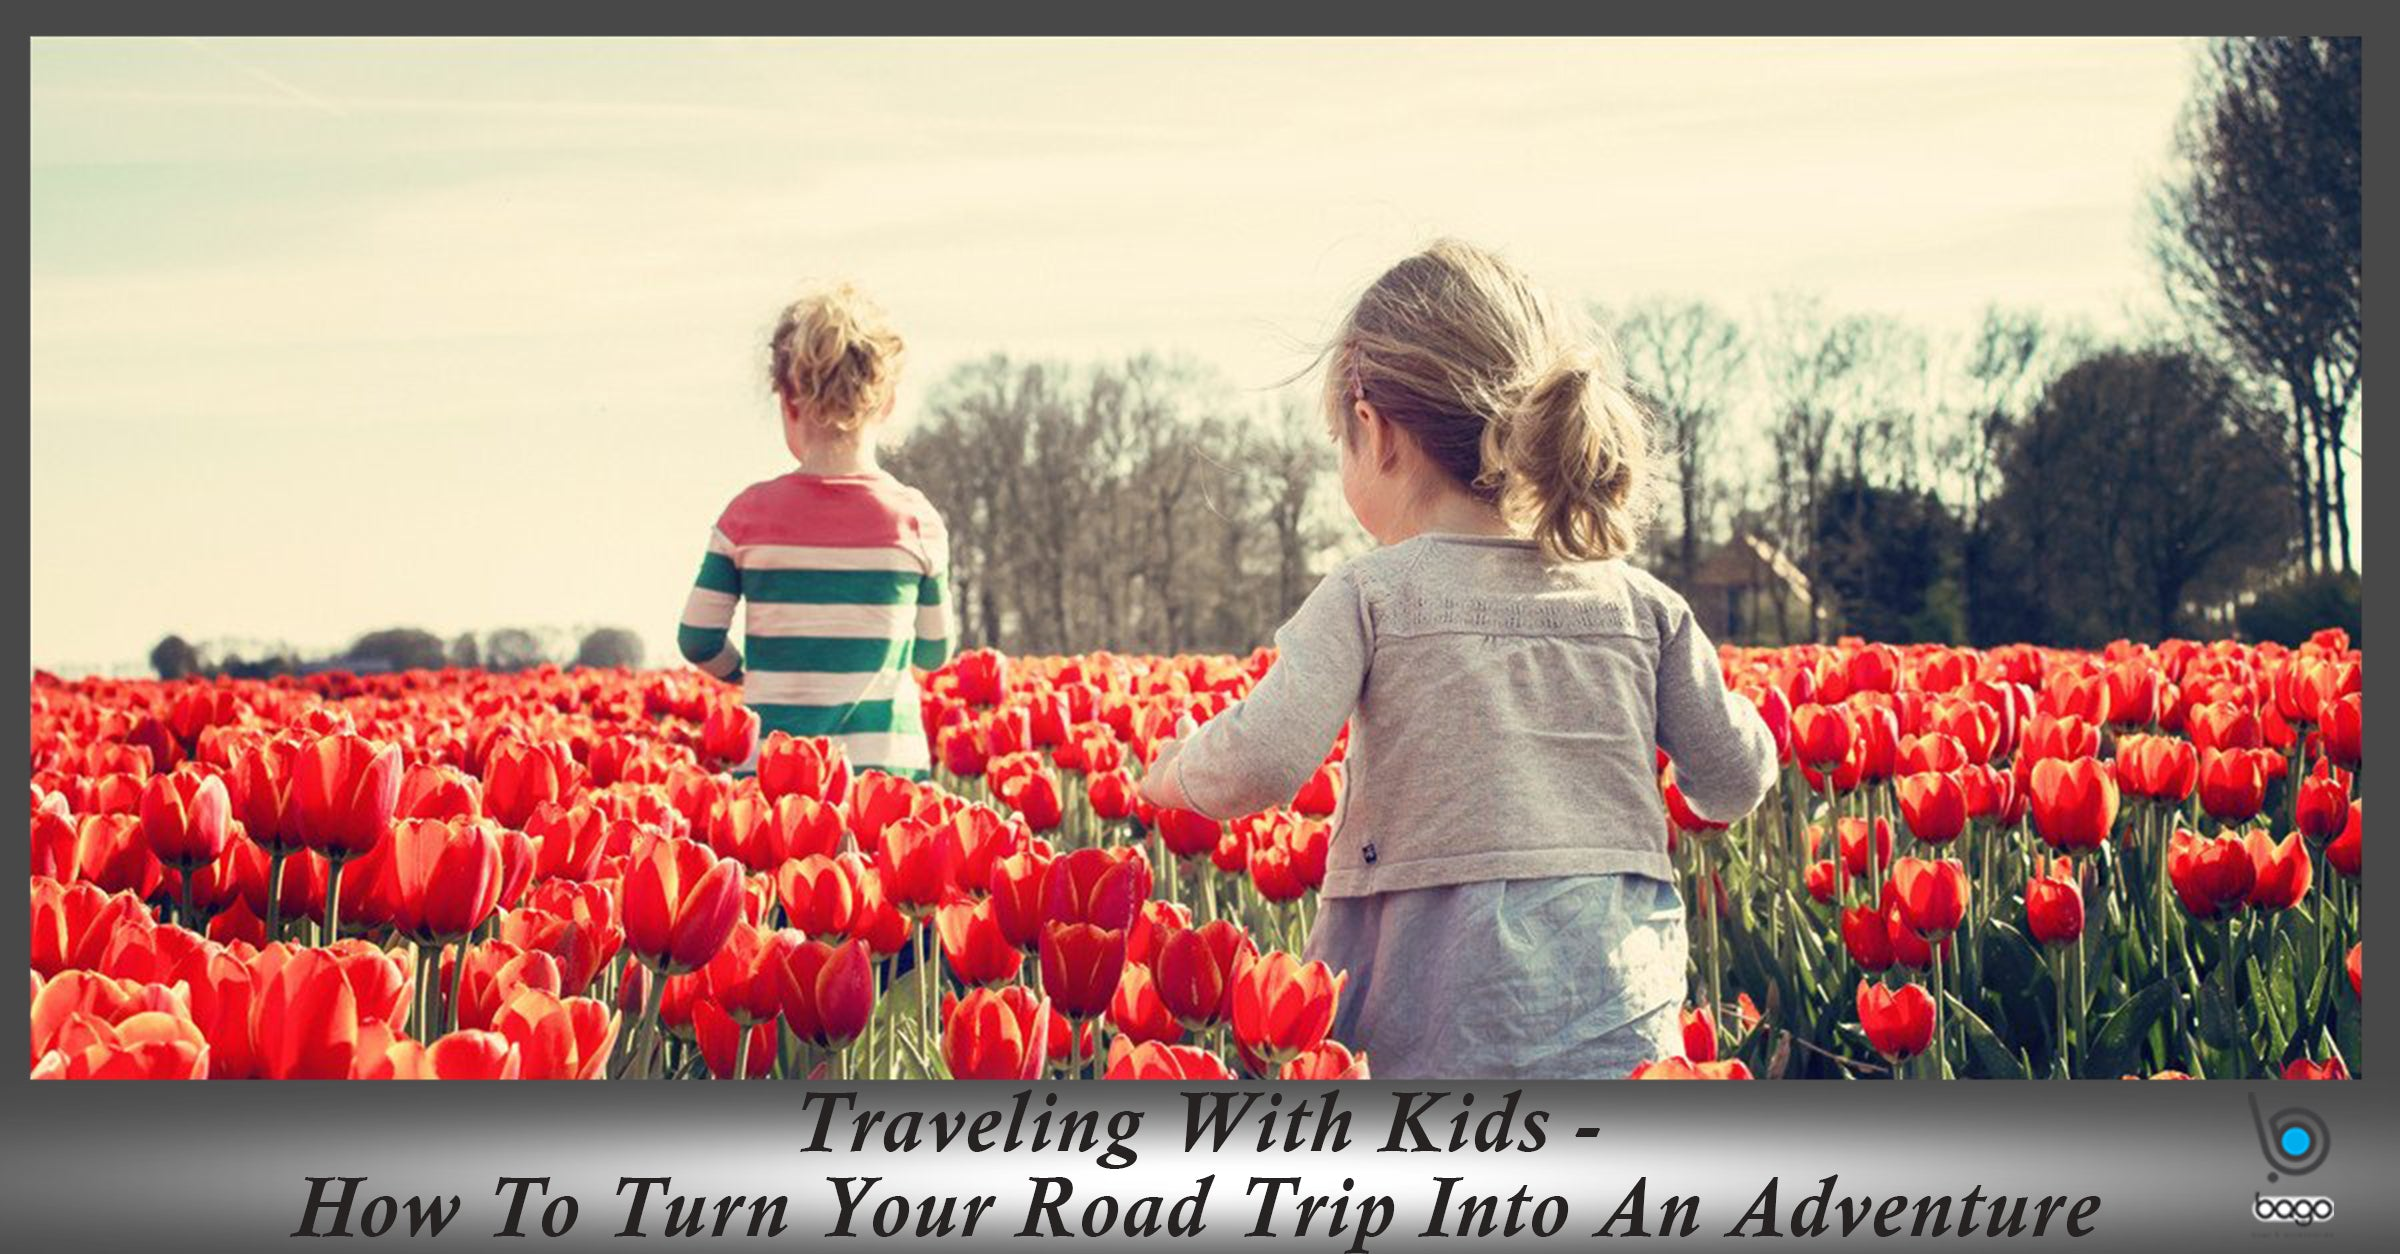 Traveling With Kids - How To Turn Your Road Trip Into An Adventure